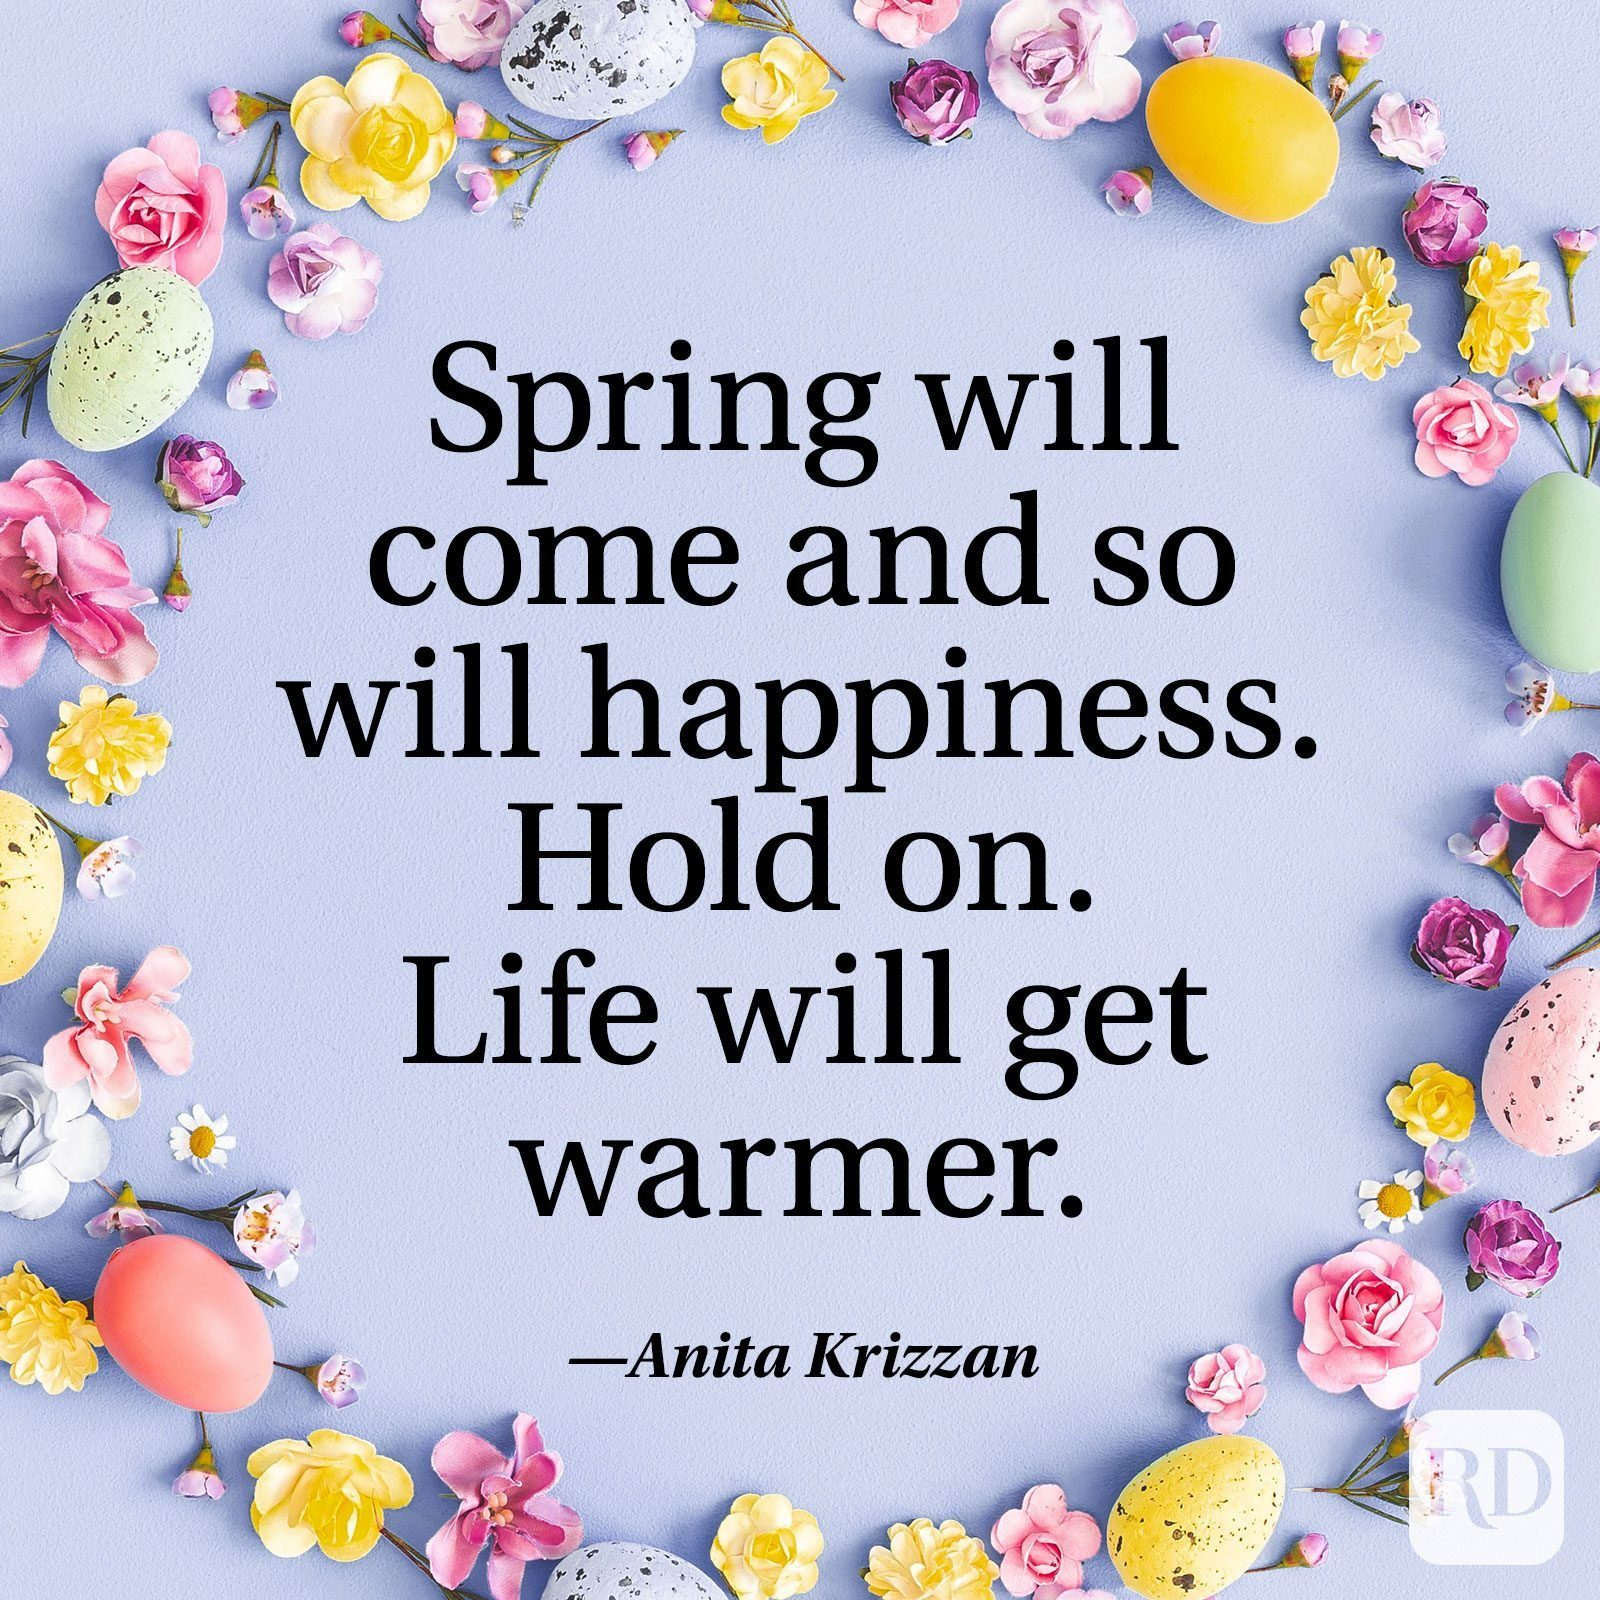 """""""Spring will come and so will happiness. Hold on. Life will get warmer."""" — Anita Krizzan"""